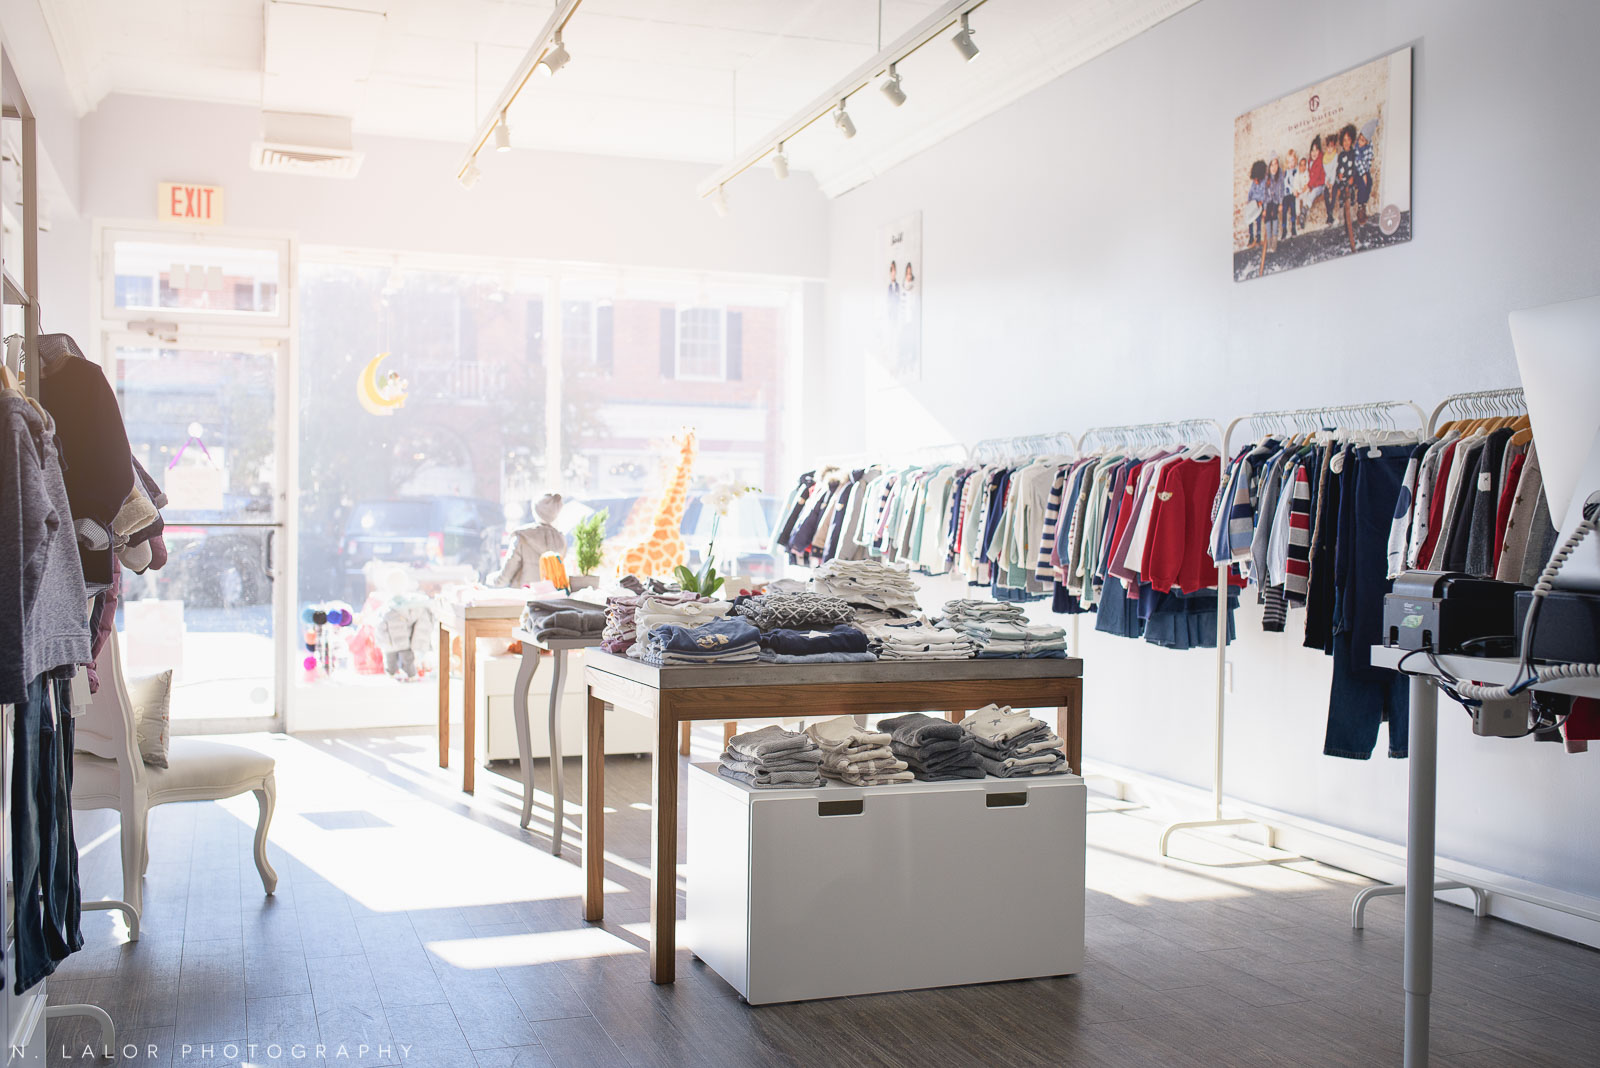 Ella & Henry kids and baby clothing boutique in New Canaan. Photo by N. Lalor Photography.